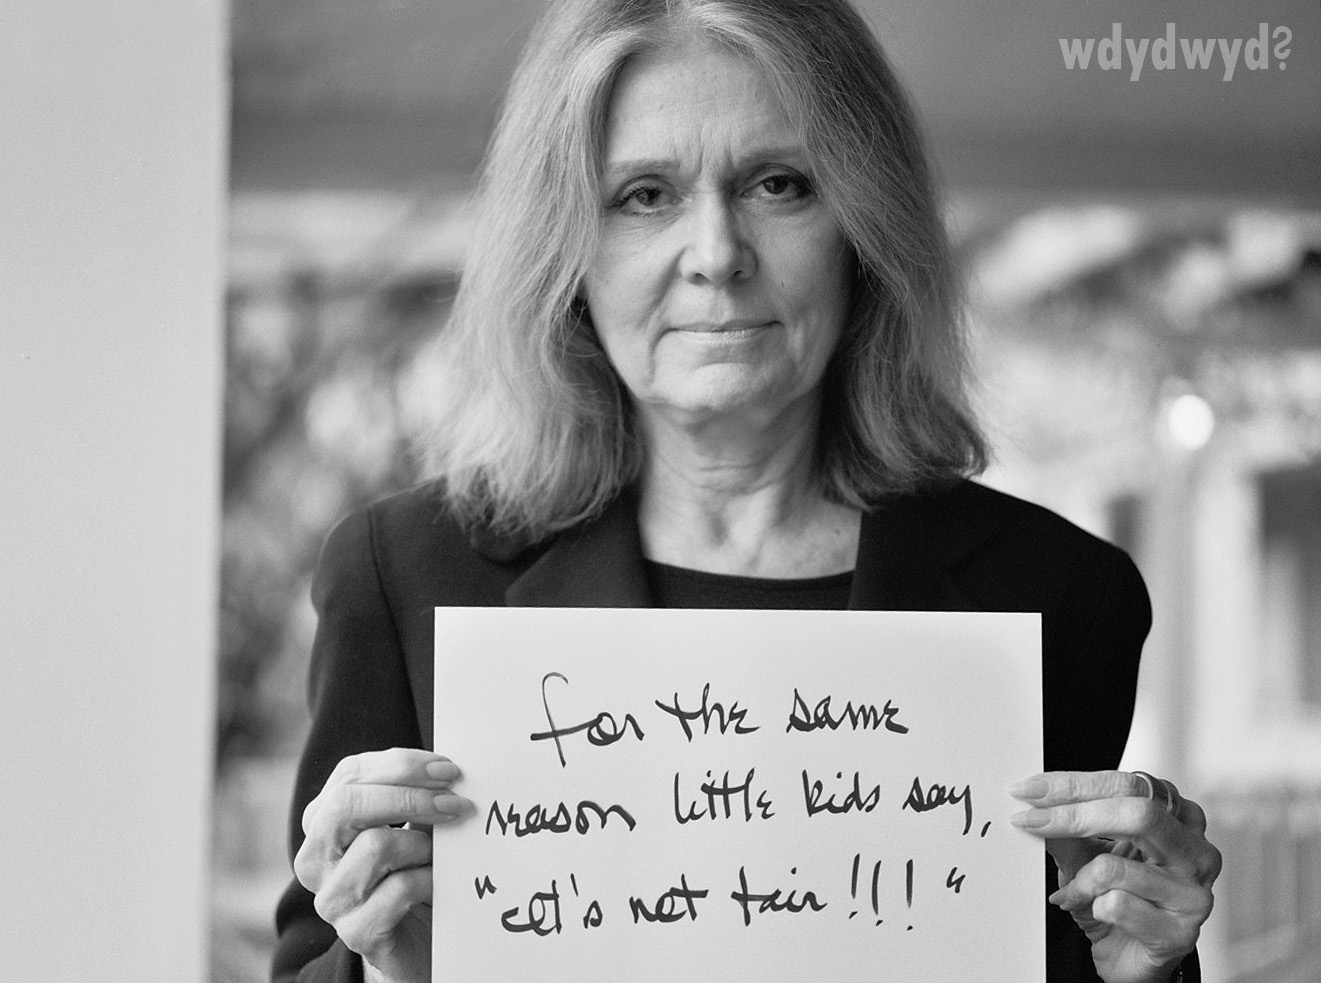 Quotes By Famous Women Gloria Steinem's Quotes Famous And Not Much  Sualci Quotes